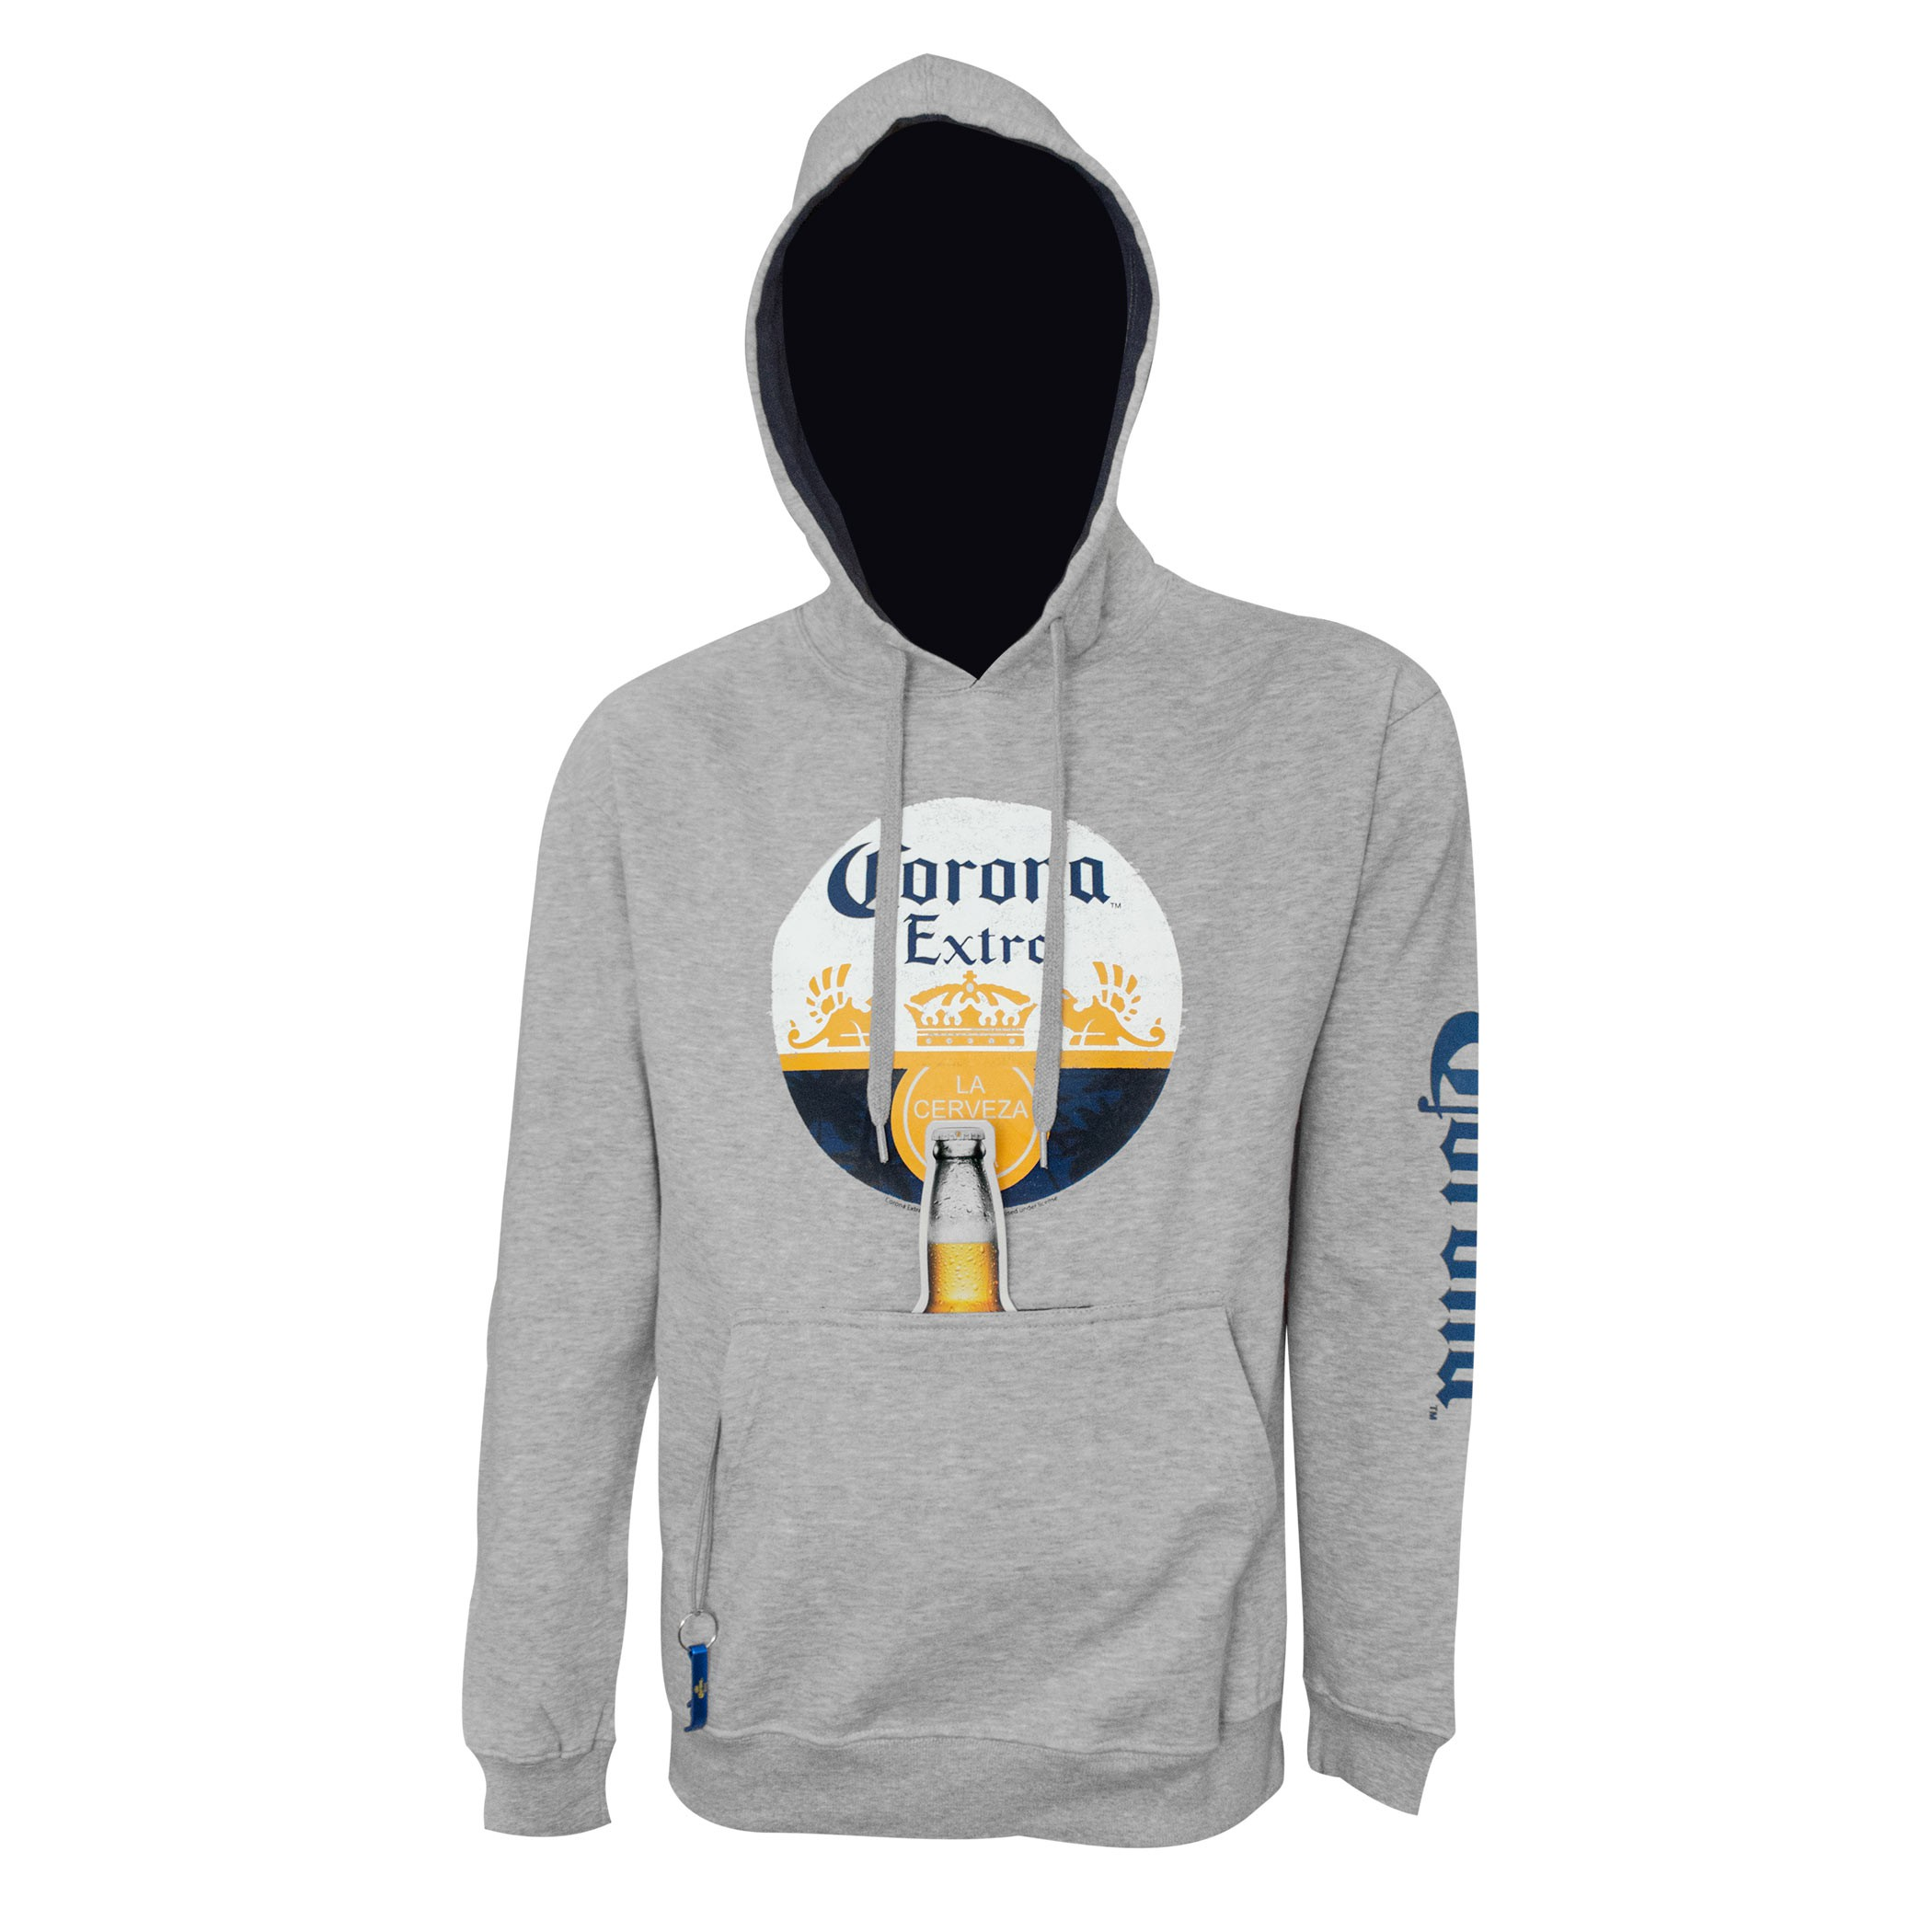 Corona Circle Logo Beer Pouch Hoodie With Bottle Opener